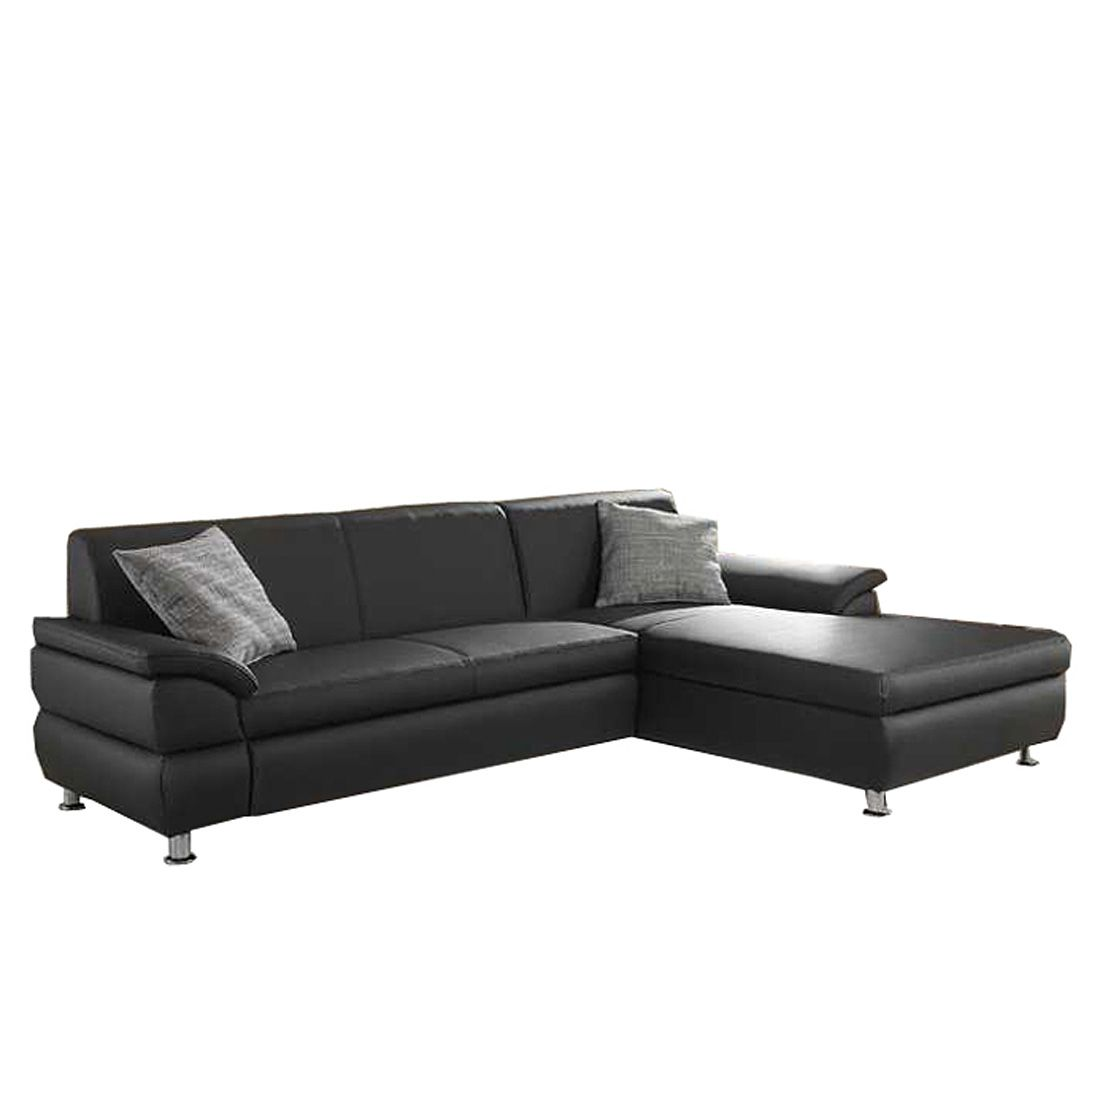 kleine sofas mit schlaffunktion sofa mit schlaffunktion. Black Bedroom Furniture Sets. Home Design Ideas